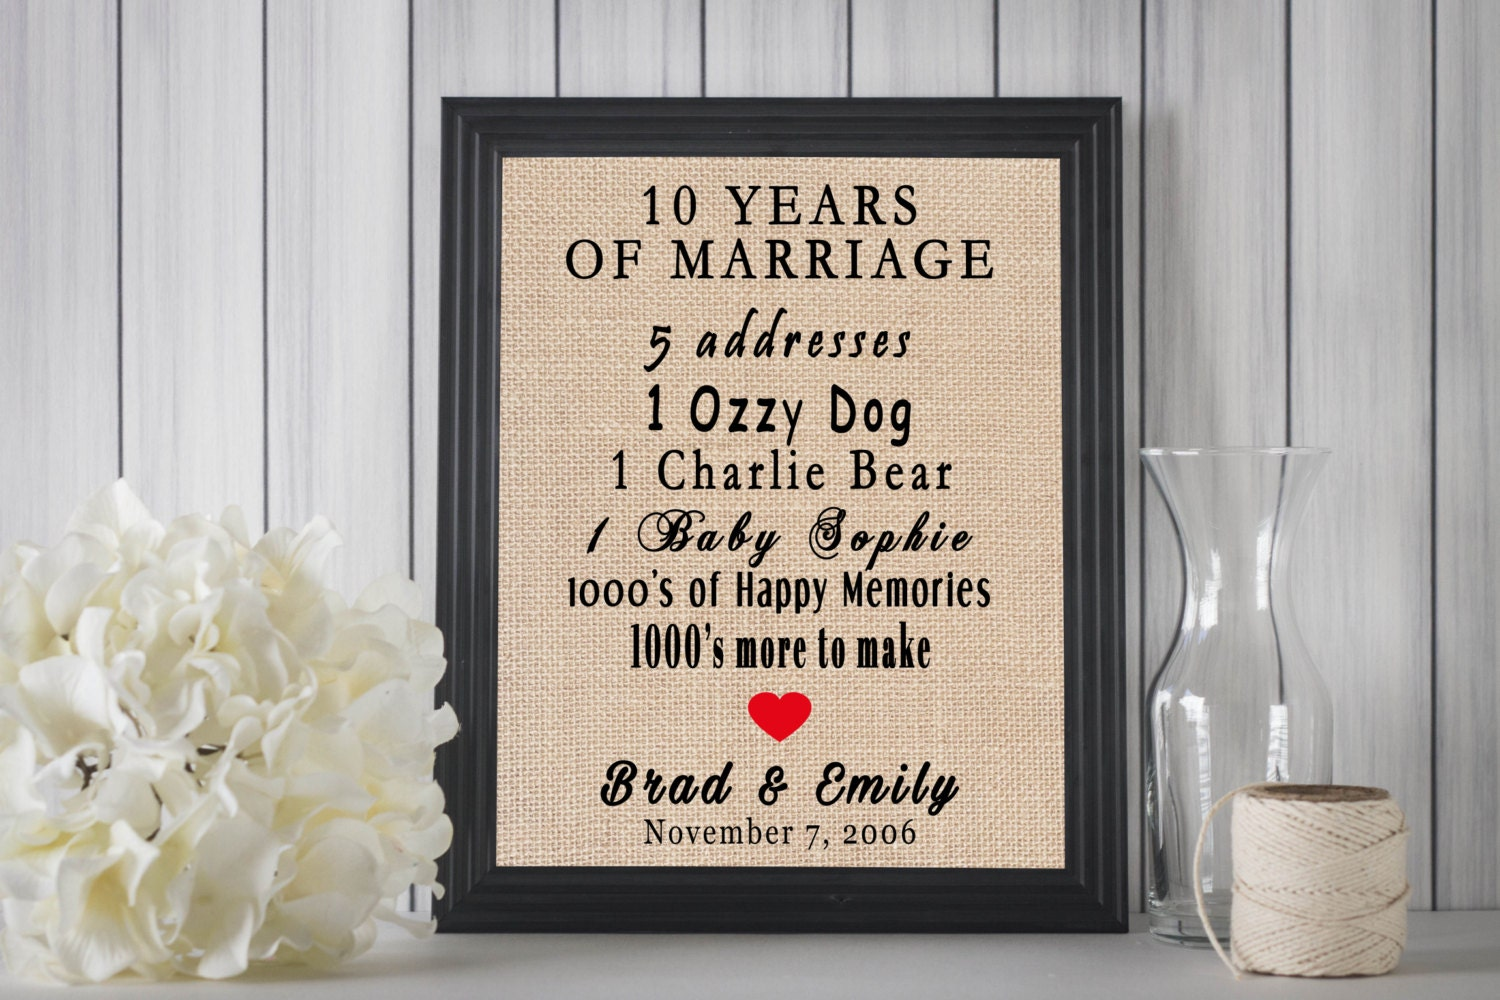 10 Years Of Marriage  10 Year Anniversary Sign  10 Year. Covers For Dining Room Chairs. Home Theatre Room Decorating Ideas. Theater Rooms. Decorative Motion Sensor Light. Leather Waiting Room Chairs. Baby Decor Websites. Best Large Room Humidifier. Decorations For Home